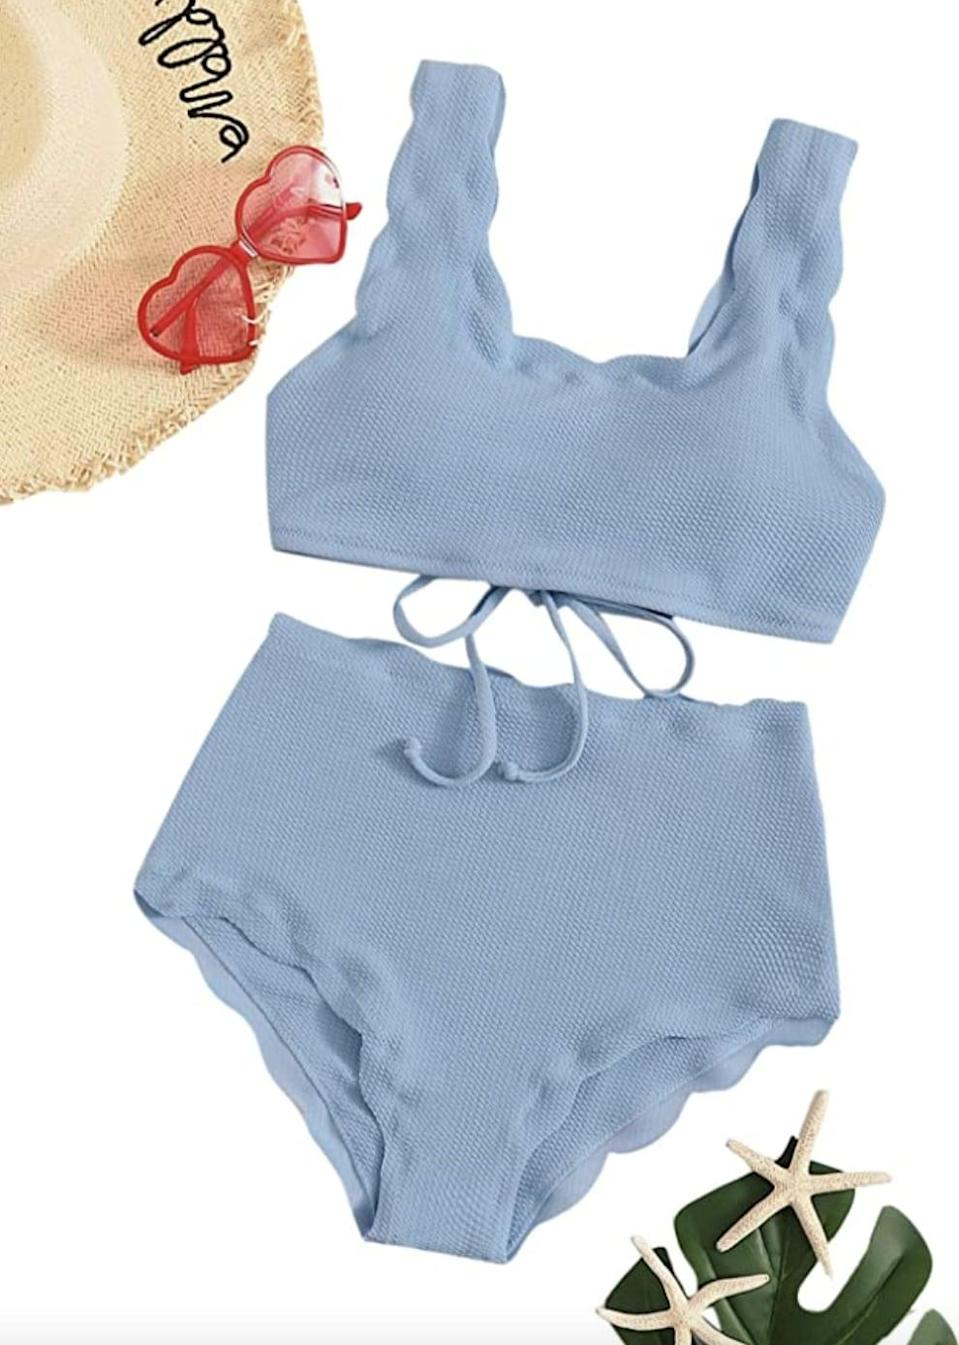 <p>This <span>SweatyRocks High-Waist Scalloped Bikini</span> ($21 - $24) has a charming silhouette and playful color palette you'll be sure to love.</p>